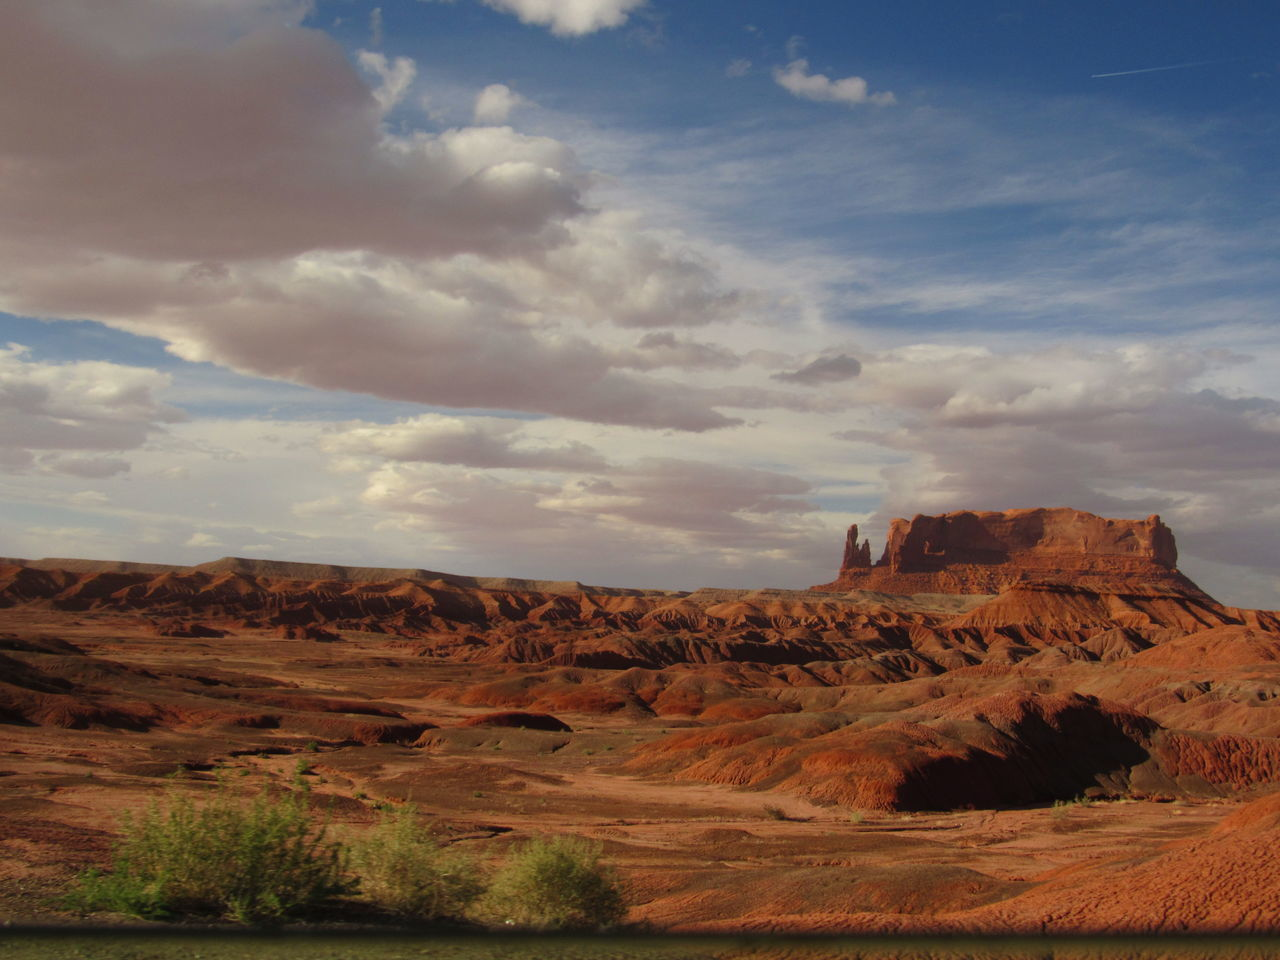 View Of Rock Formation On Arid Landscape